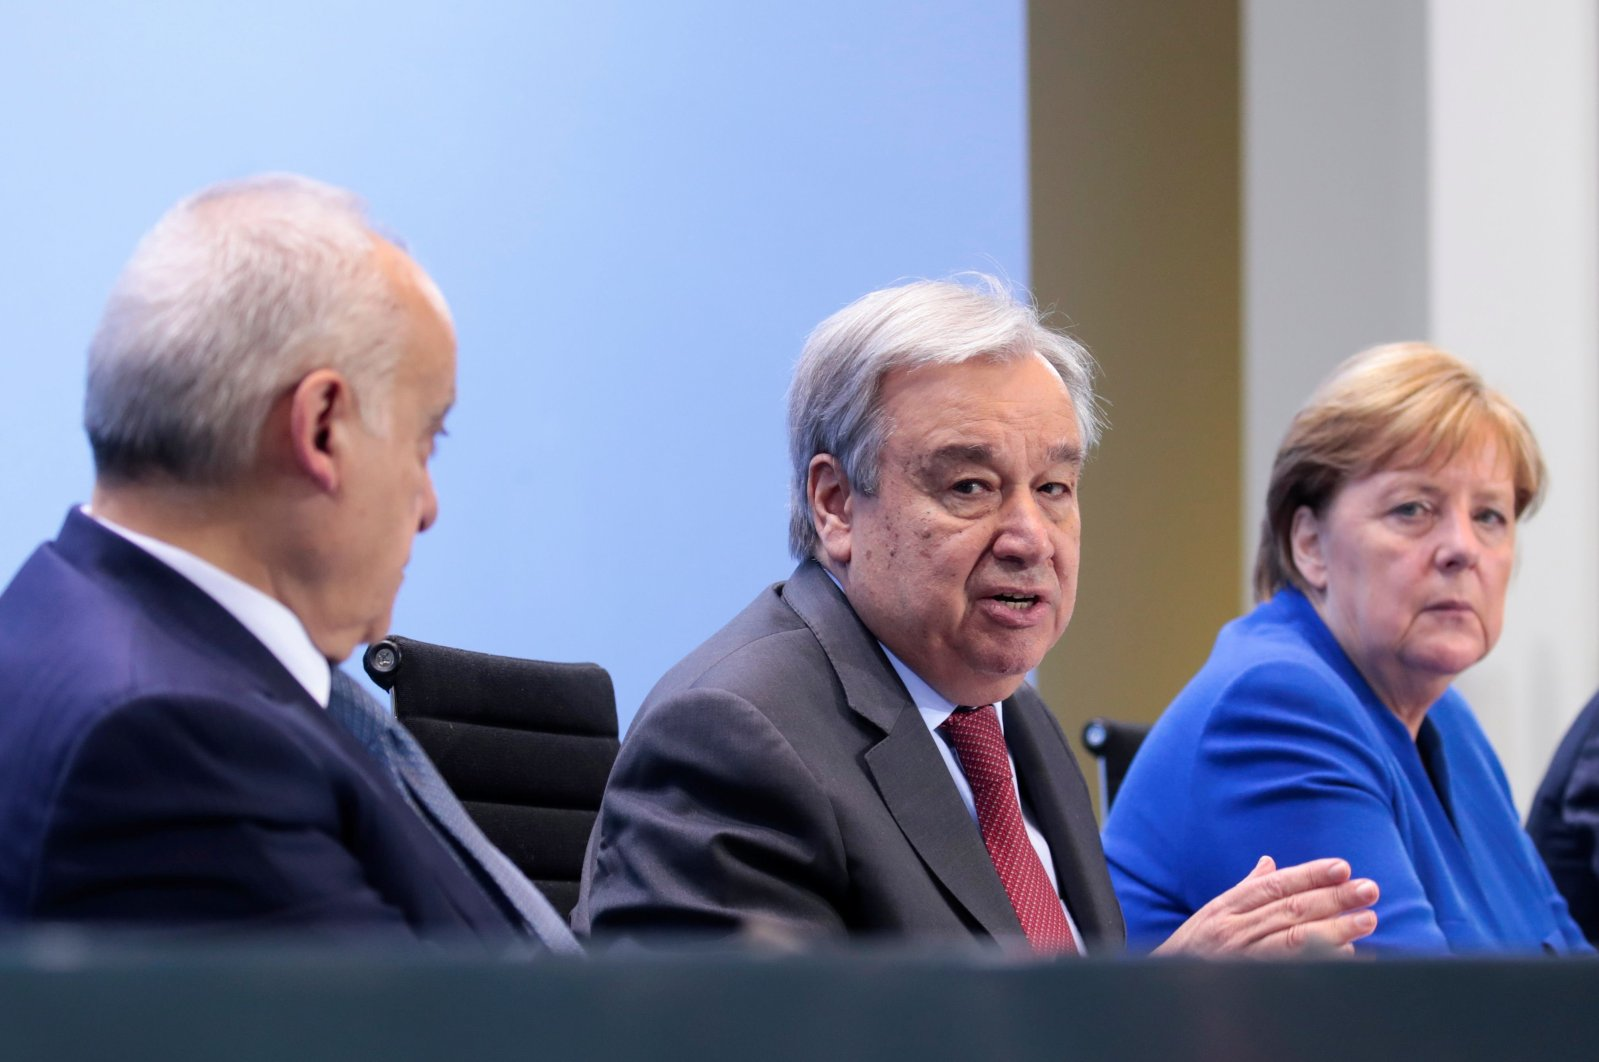 Secretary-General of the United Nations Antonio Guterres (C) speaks next to German Chancellor Angela Merkel during a press conference at the end of a Peace summit on Libya at the Chancellery in Berlin on Jan. 19, 2020. (AFP File Photo)